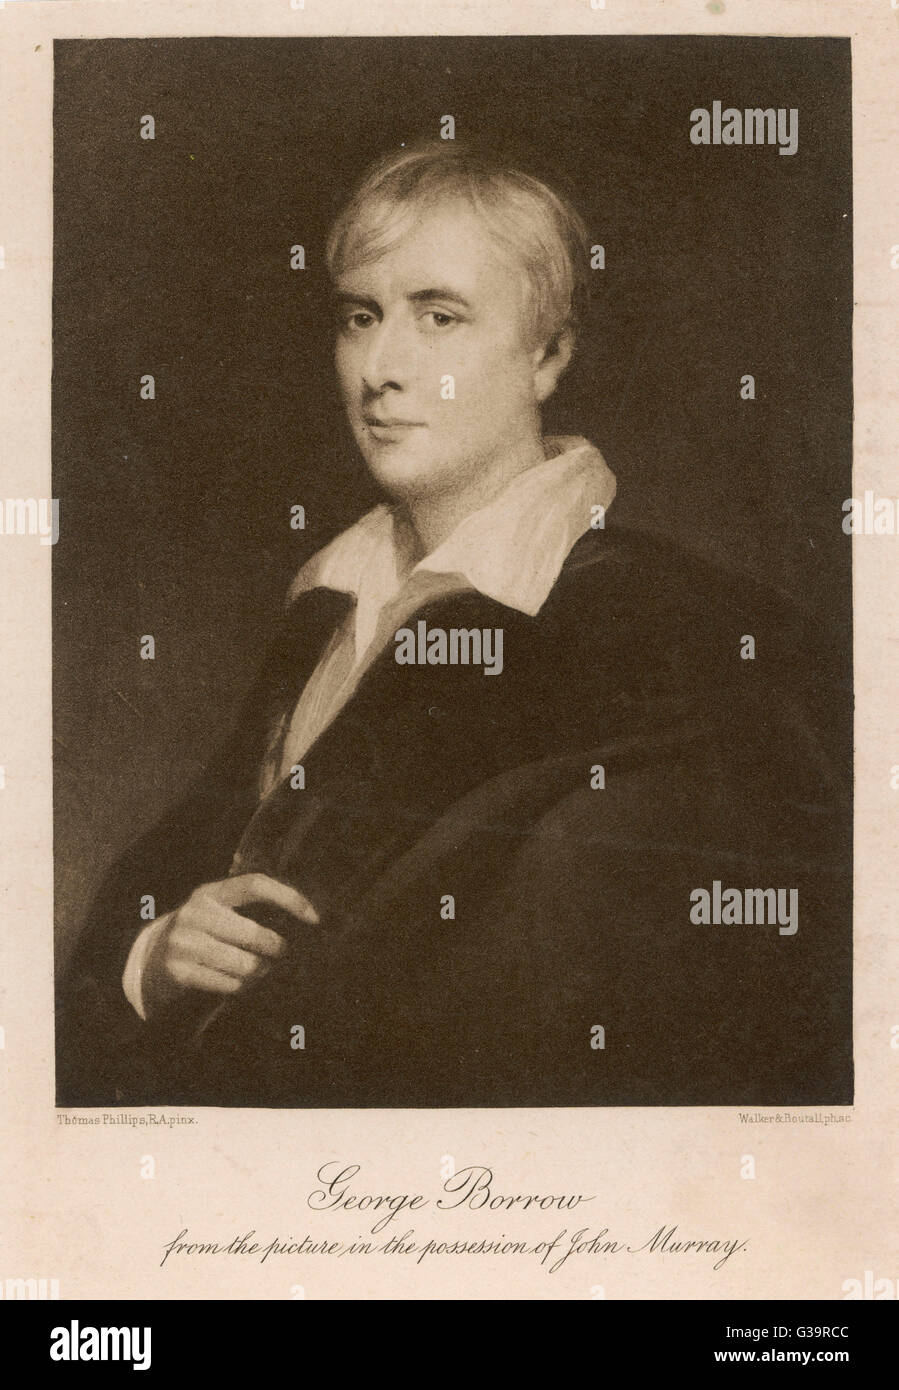 GEORGE BORROW  English author and linguist       Date: 1803 - 1881 - Stock Image